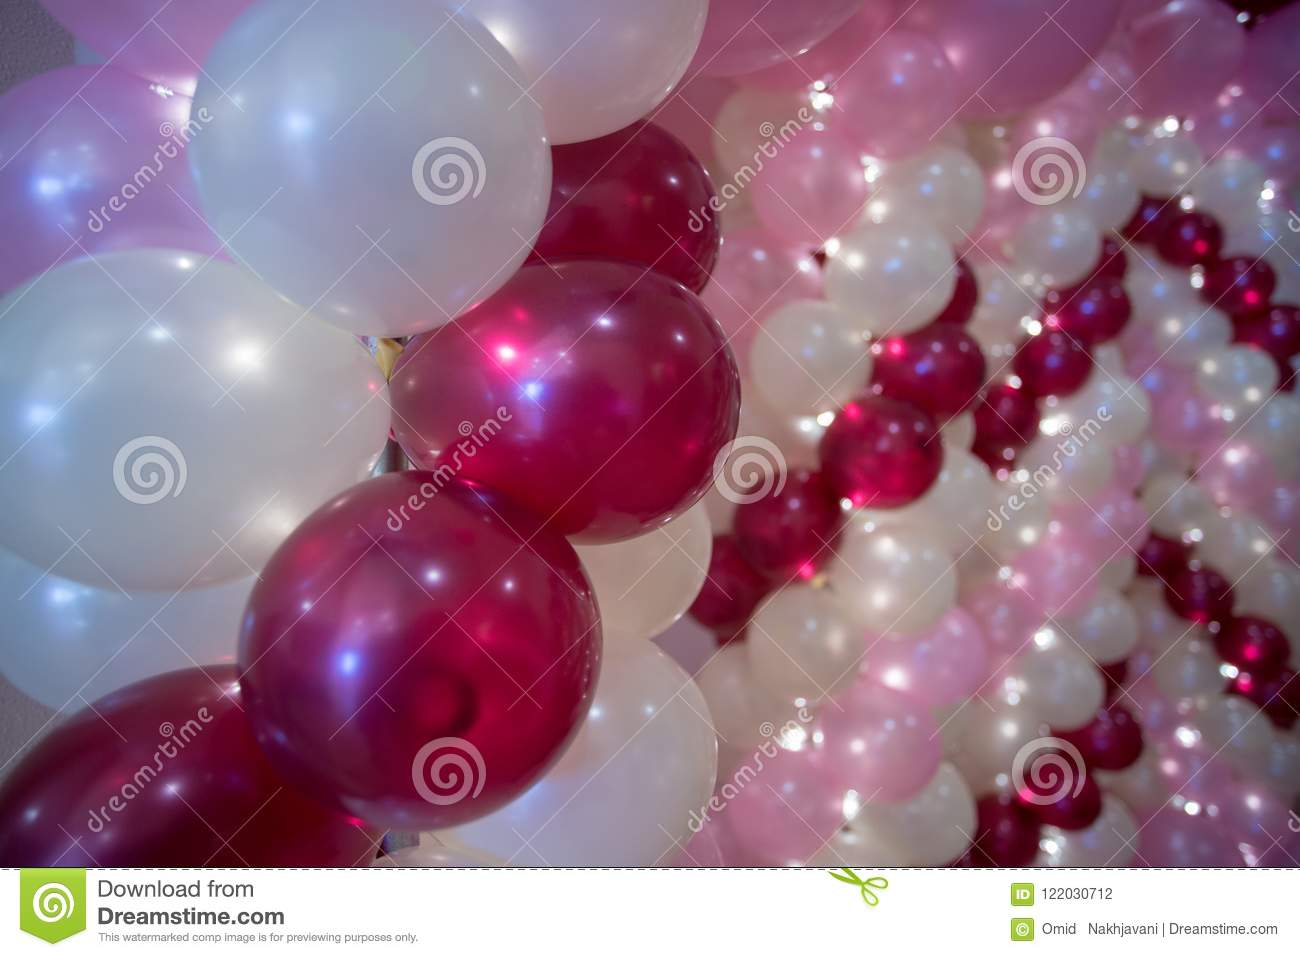 Wedding decoration, colorful balloons